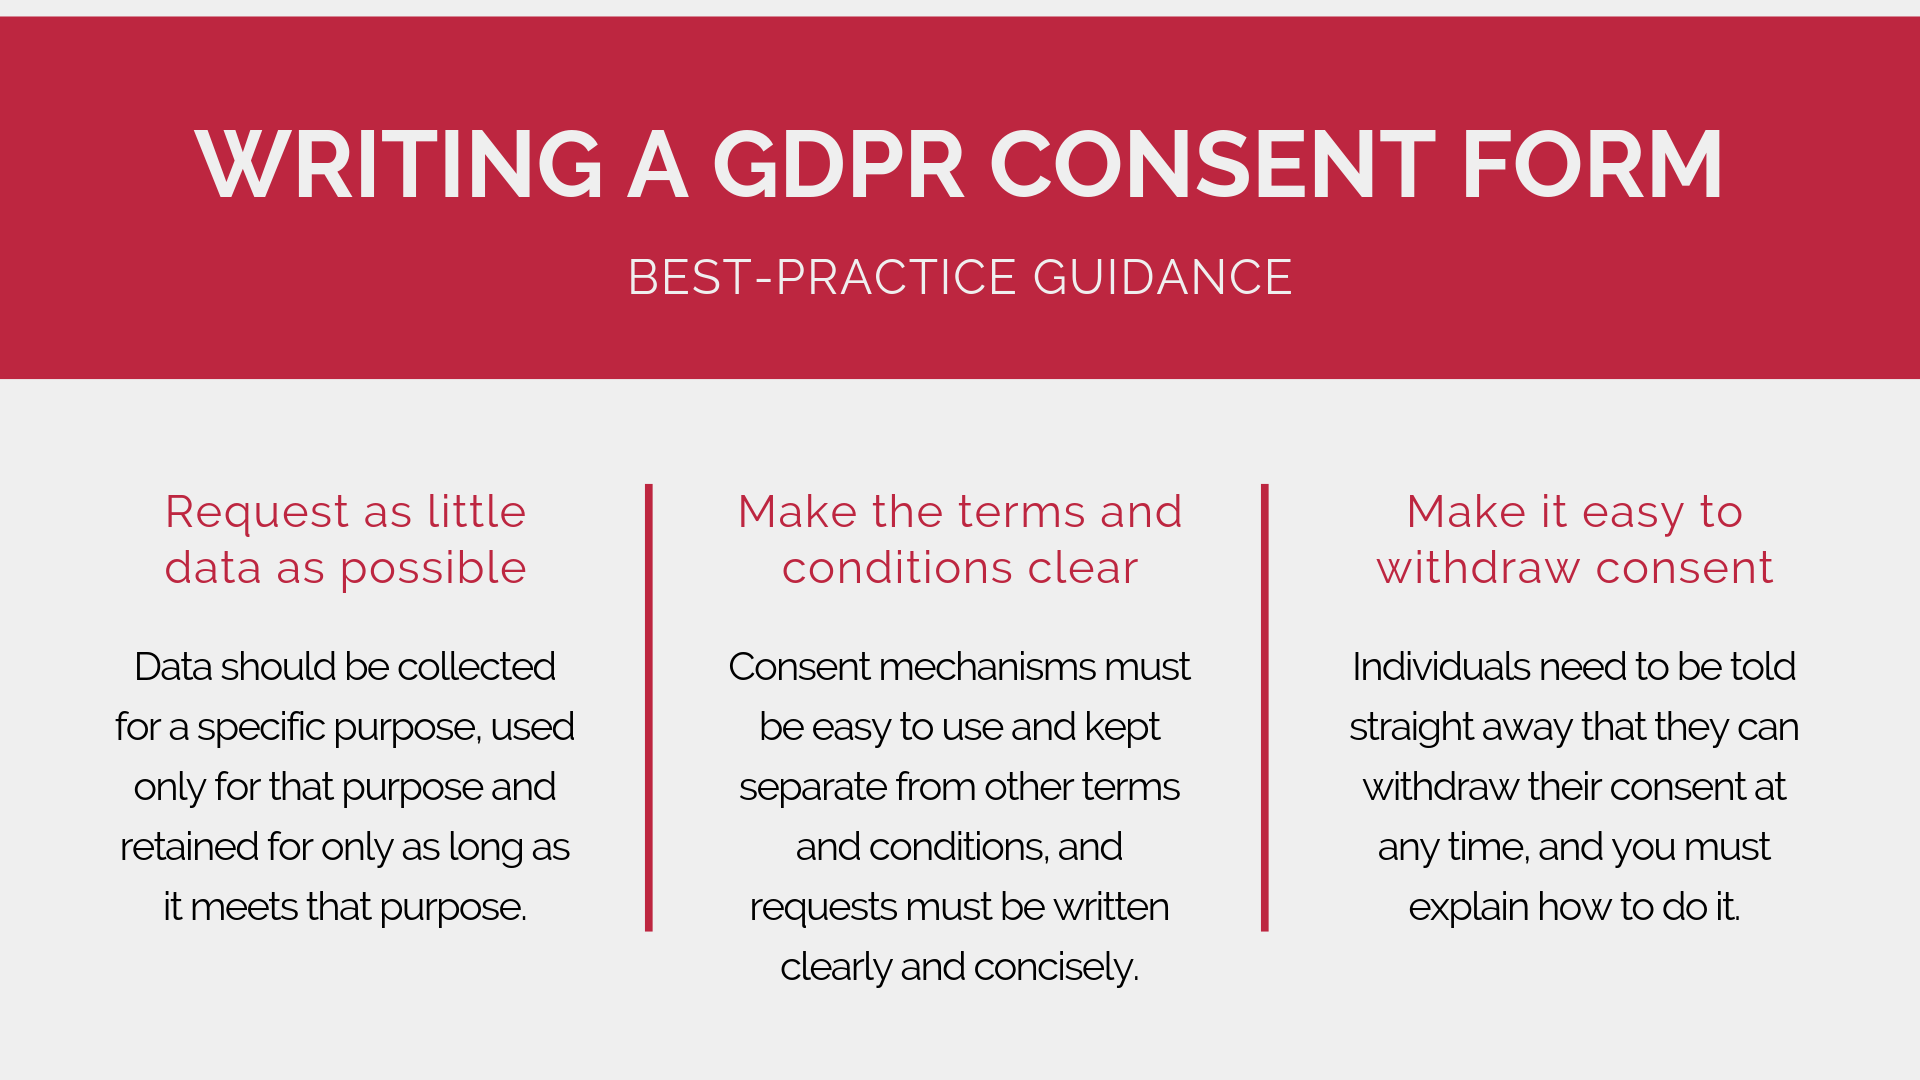 Best-practice guidance for writing a GDPR consent form